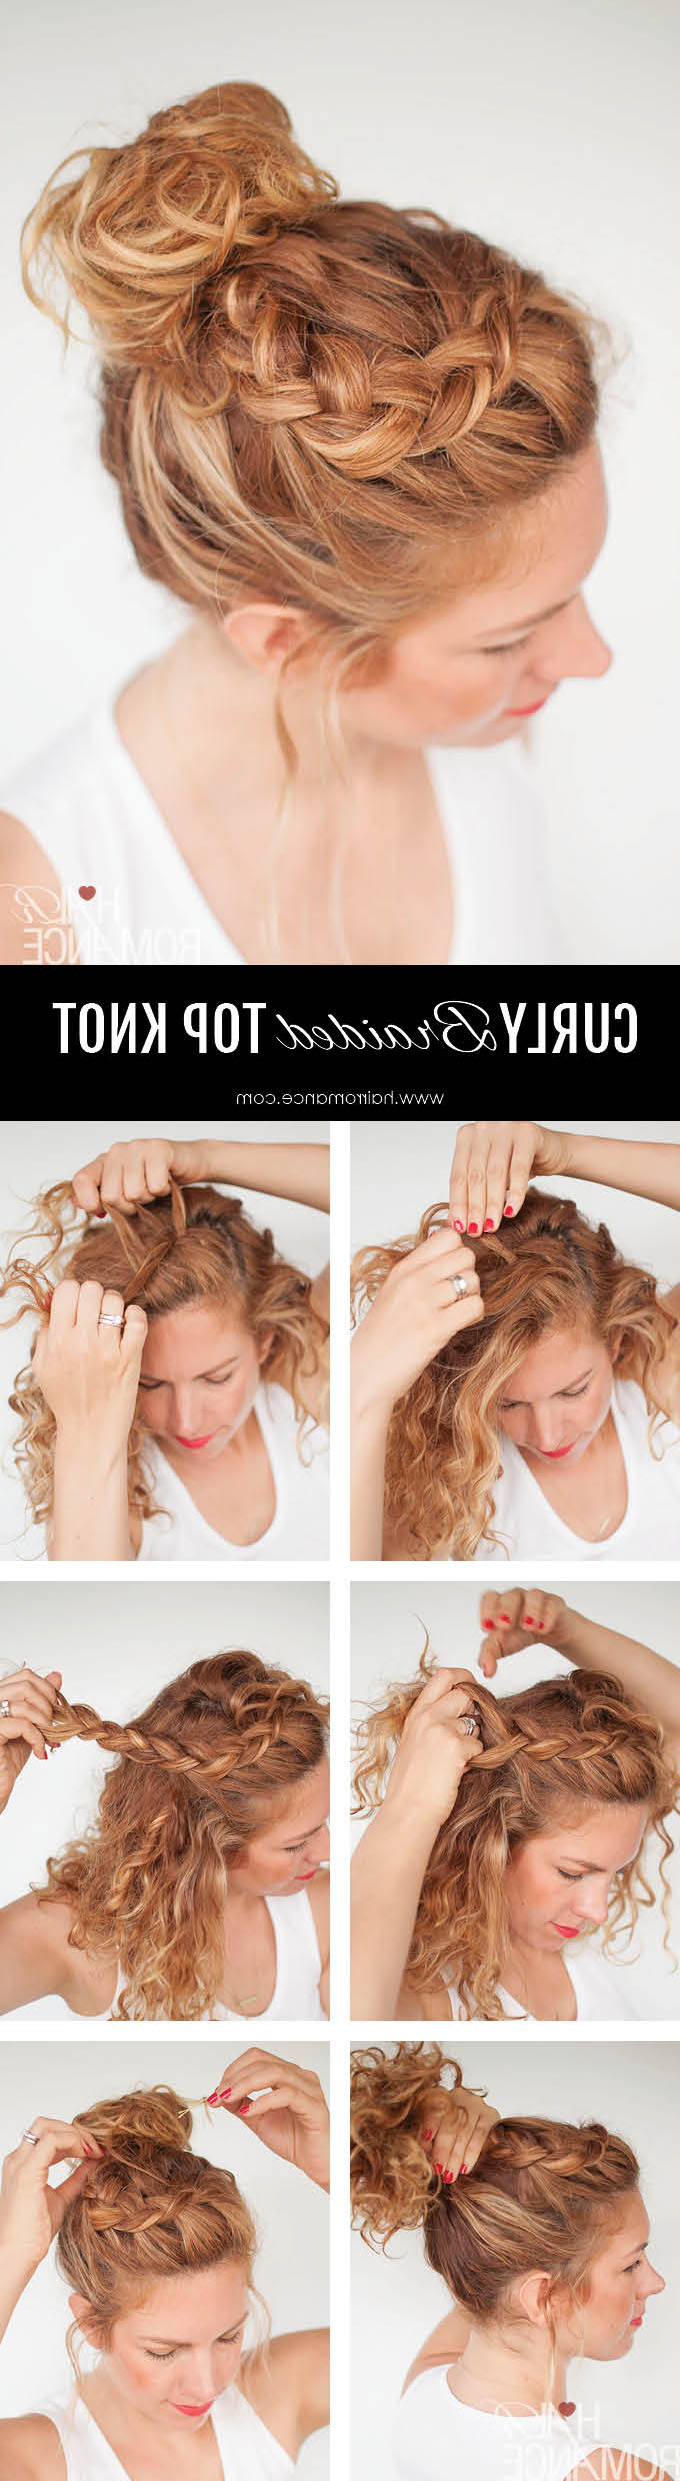 Popular Braided Topknot Hairstyles With Beads Regarding Everyday Curly Hairstyles – Curly Braided Top Knot Hairstyle (Gallery 19 of 20)